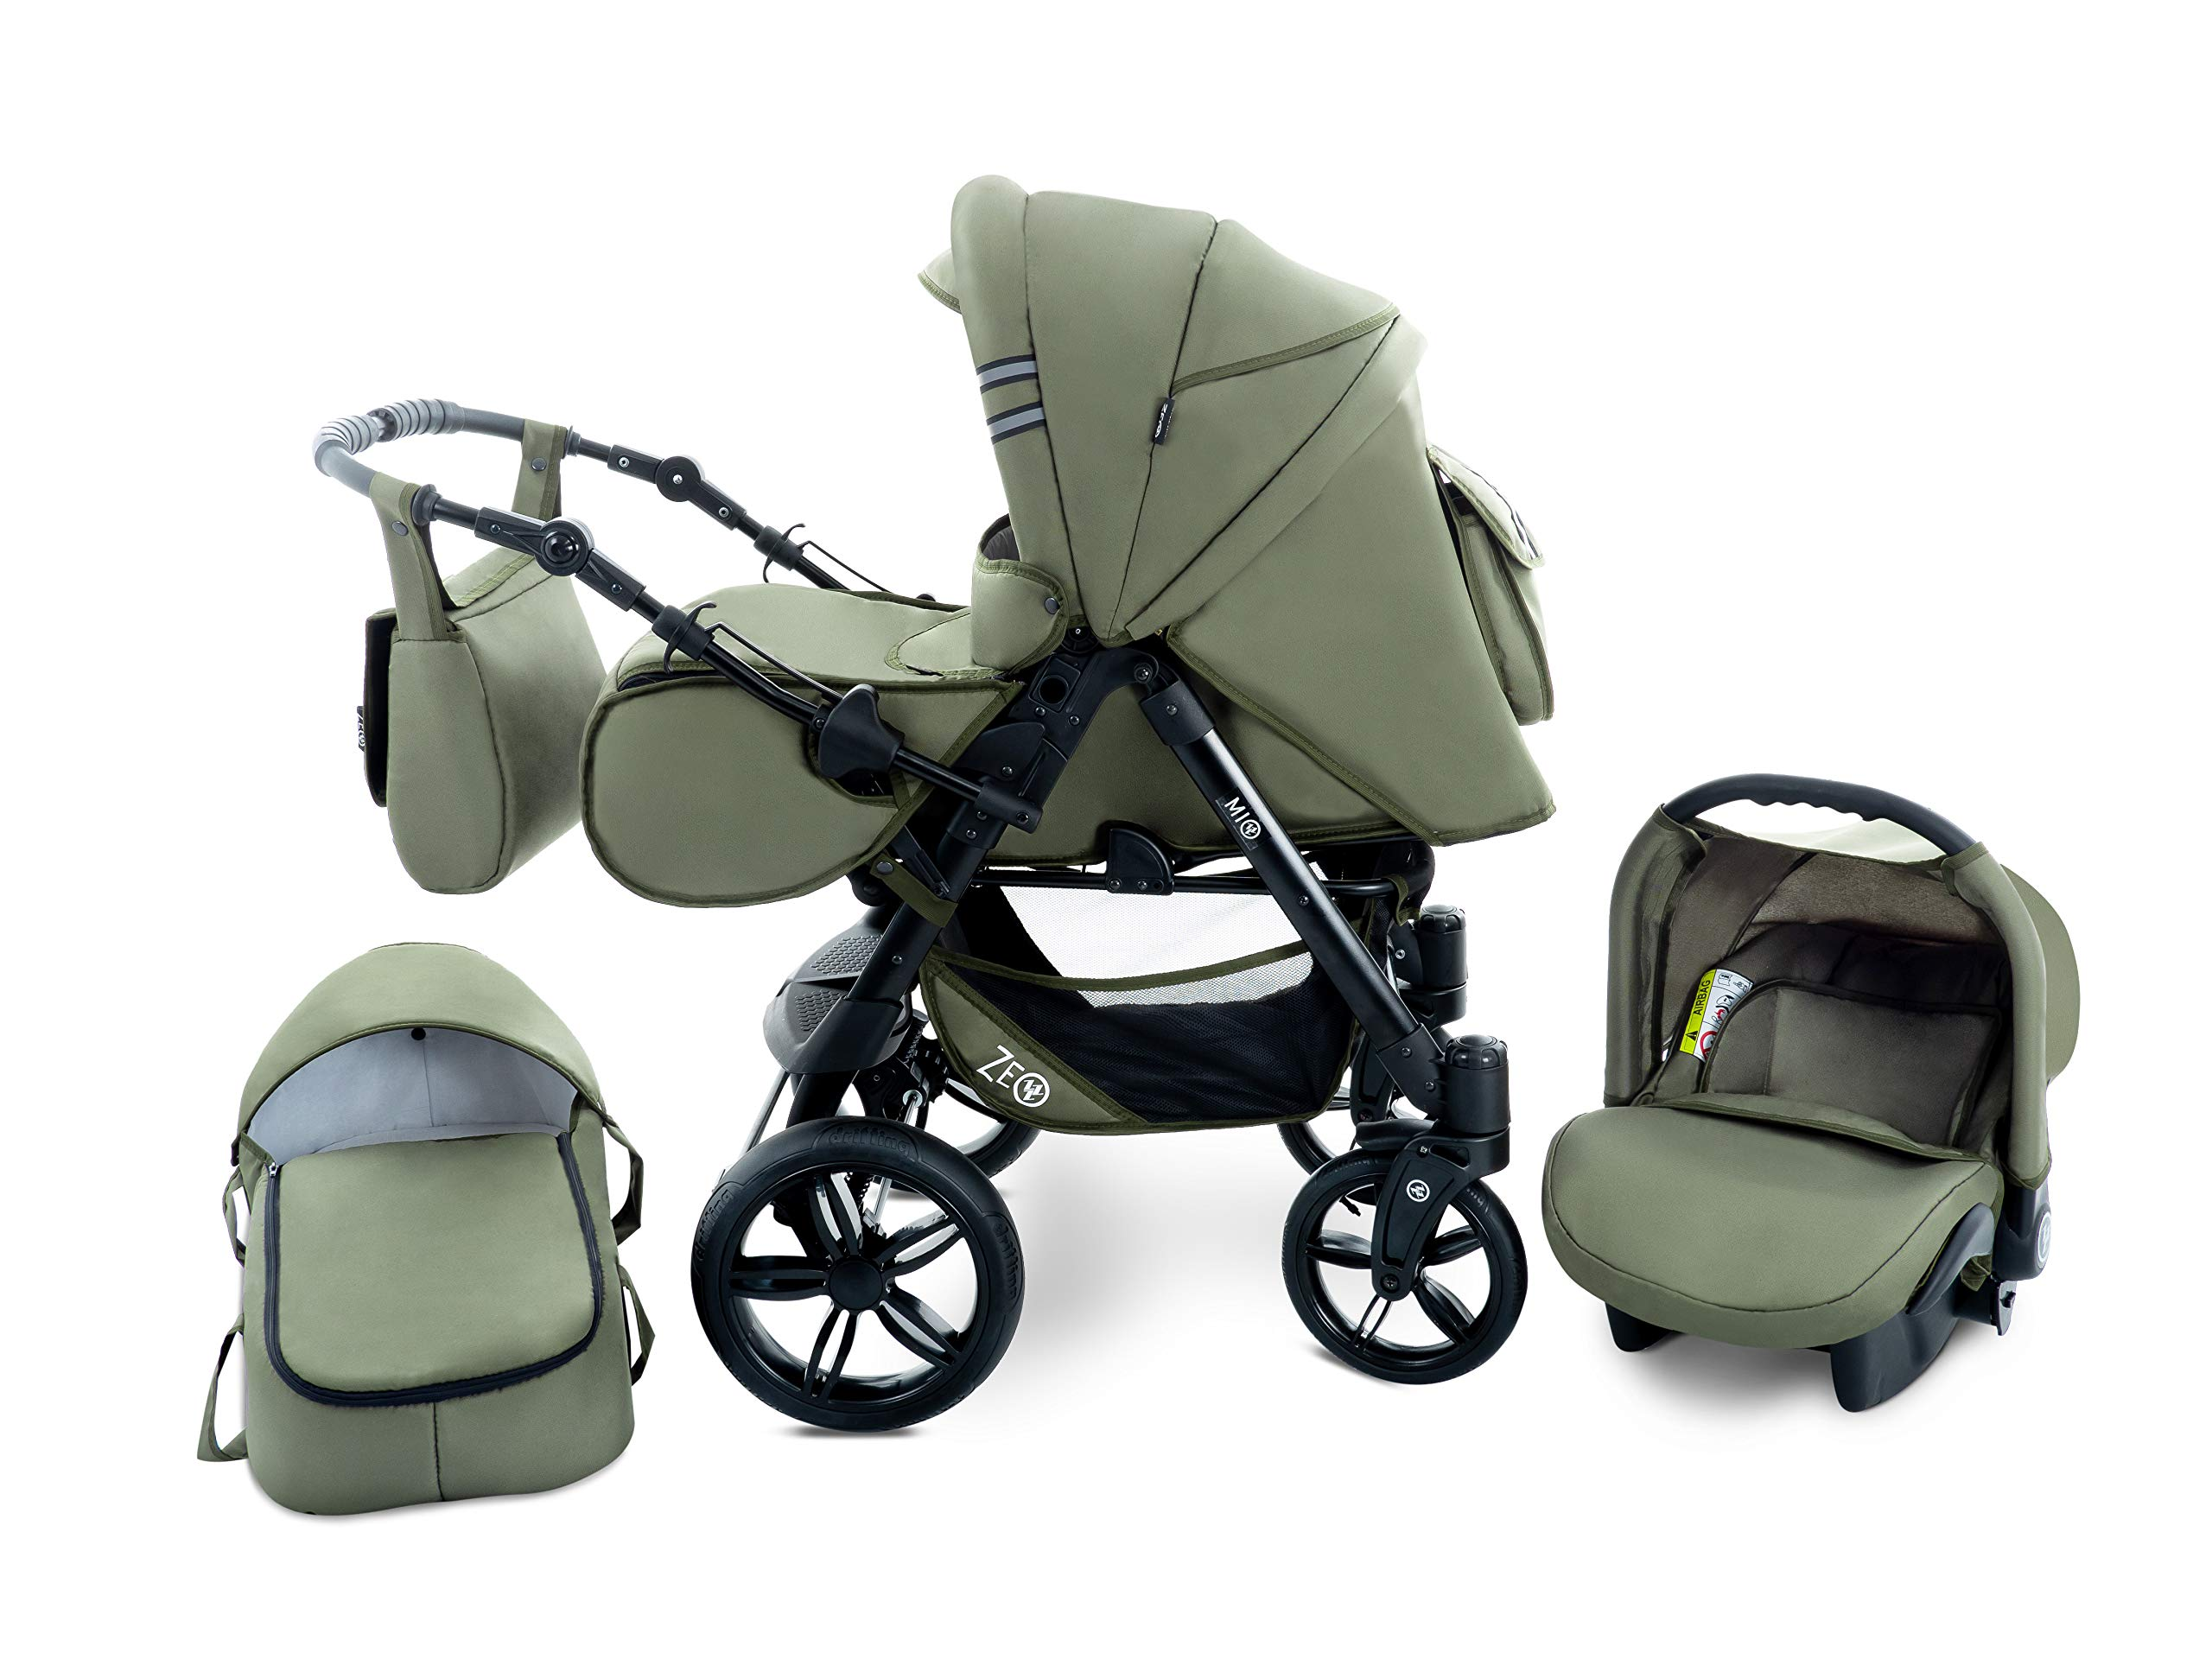 Baby Pram Zeo Mio 3in1 Set - All You Need! carrycot Gondola Buggy Sport Part Pushchair car seat (M1)  3 in 1 combination stroller complete set, with reversible handle to the buggy, child car seat or baby carriage Has 360 ° swiveling wheels, two-fold suspension, four-stage backrest, five-position adjustable footrest and a five-point safety belt The stroller can be easily converted into other functions and easy to transport 1